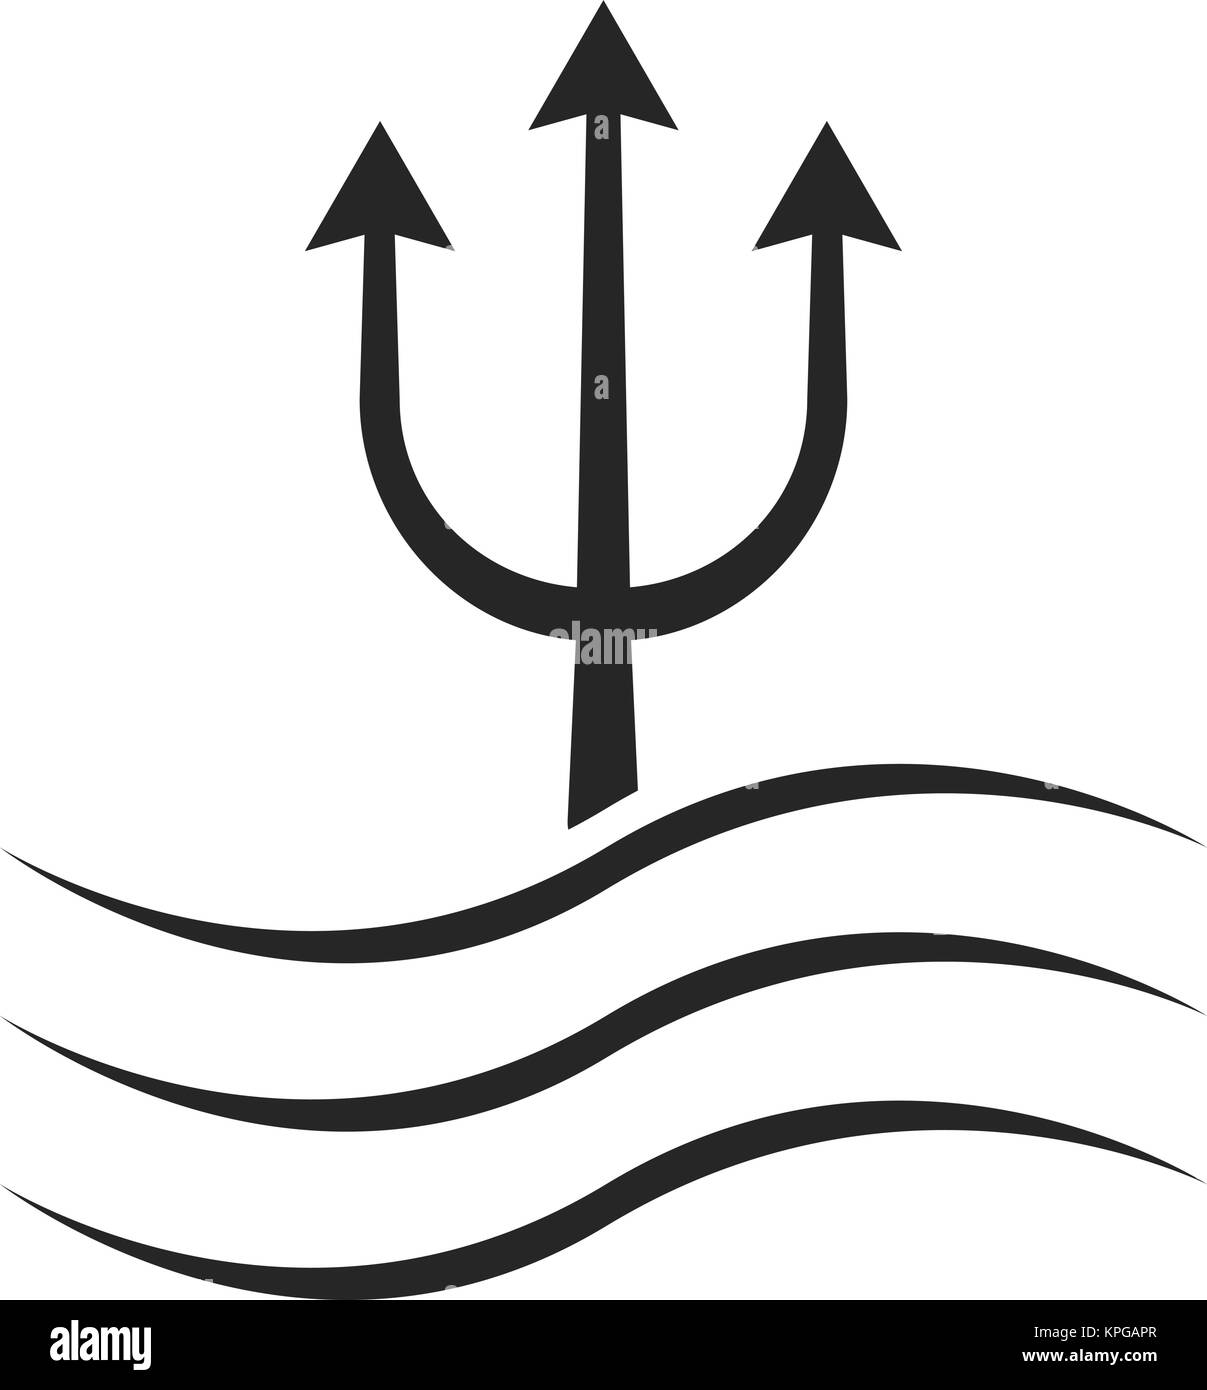 black trident icon with waves - Stock Vector